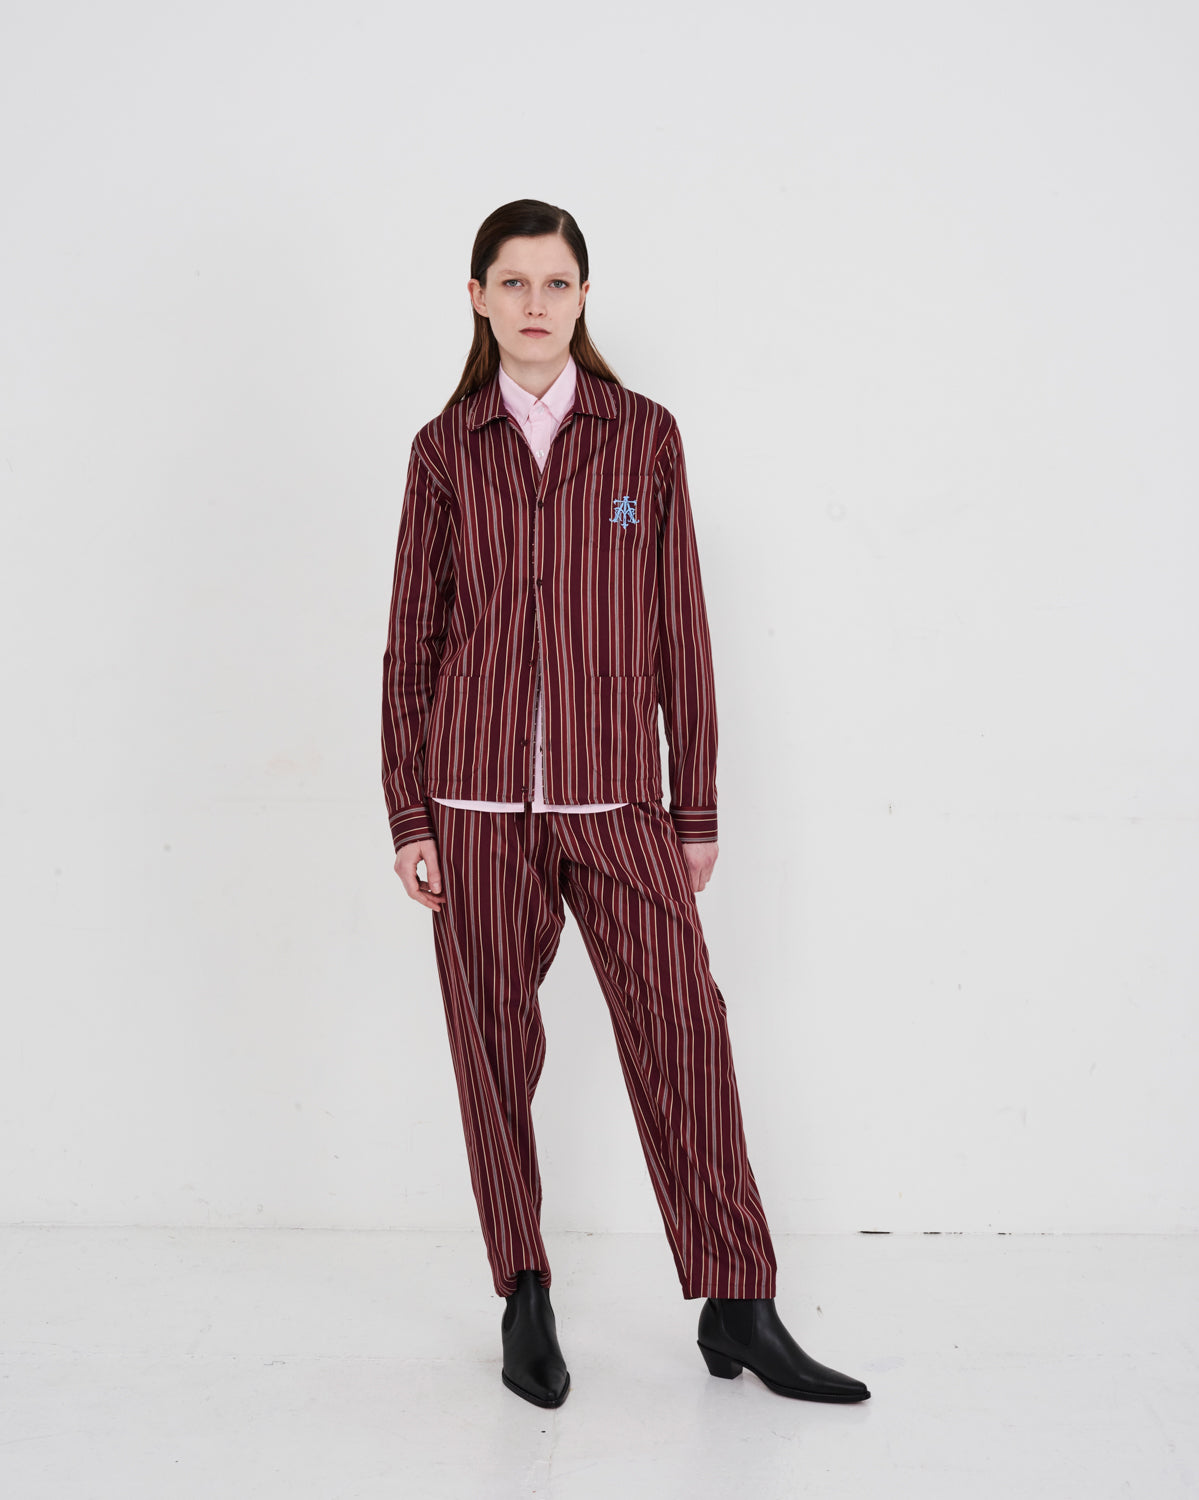 Model wears The Academy New York Crest PJ Shirt and PJ Pant in burgundy stripe.